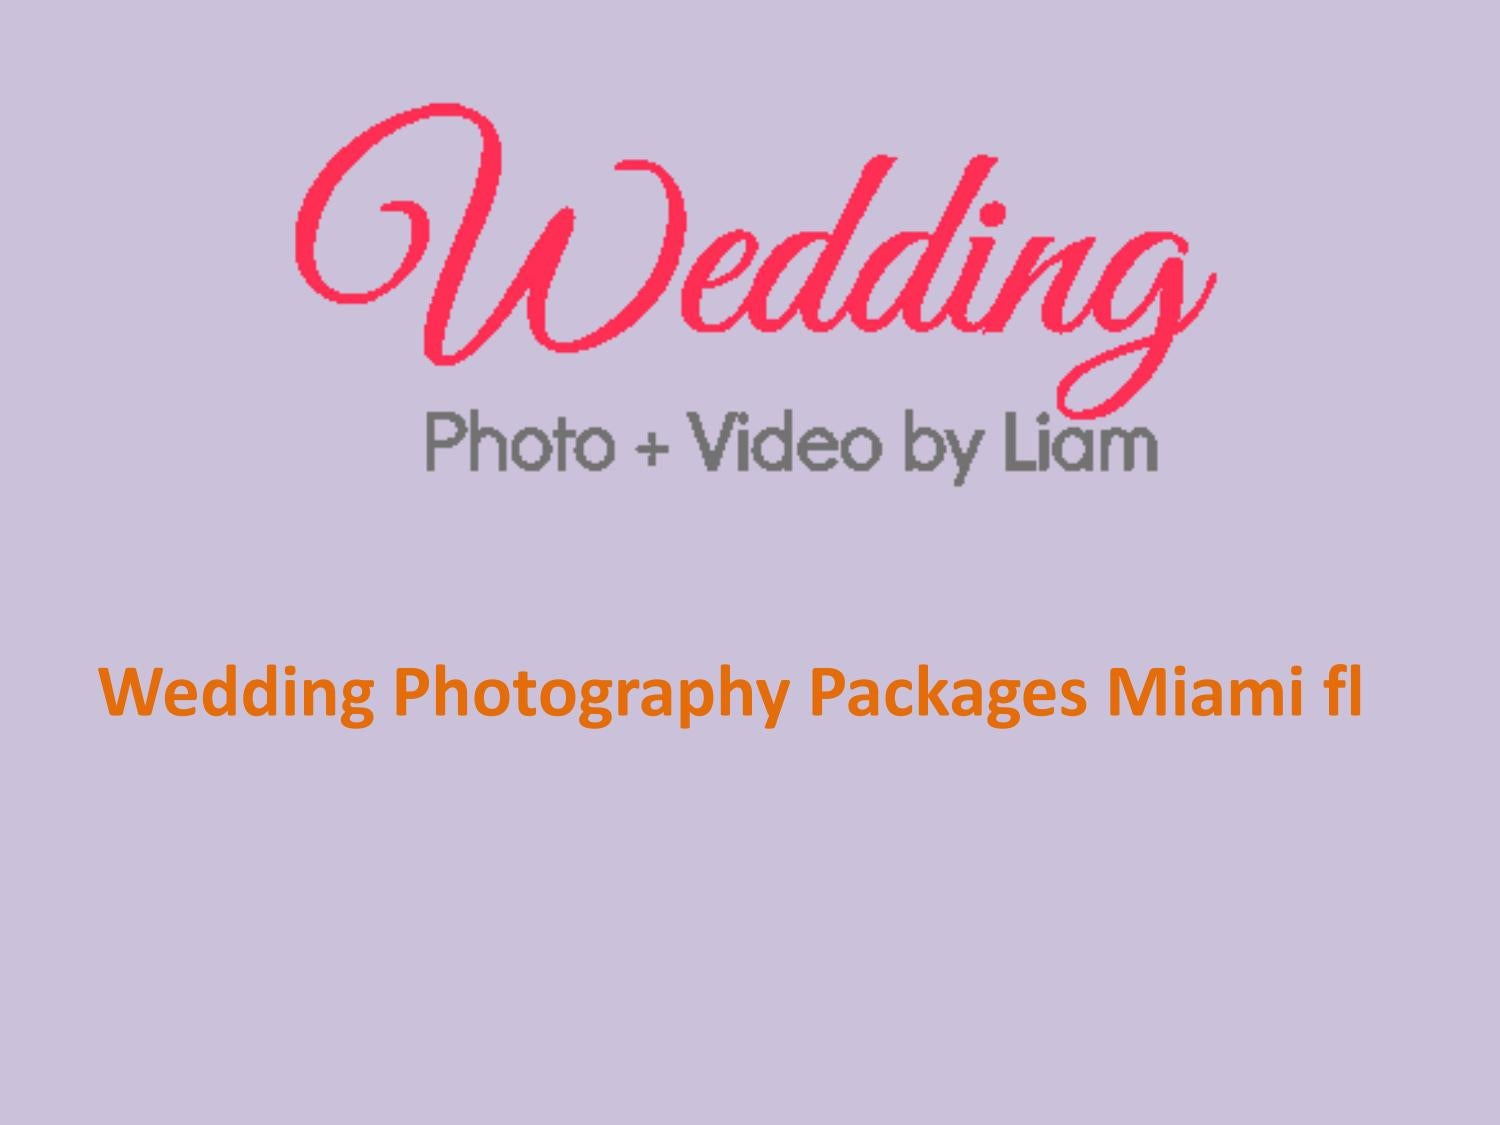 Wedding Photography Packages.Wedding Photography Packages Miami Fl By Wedding Photography By Liam